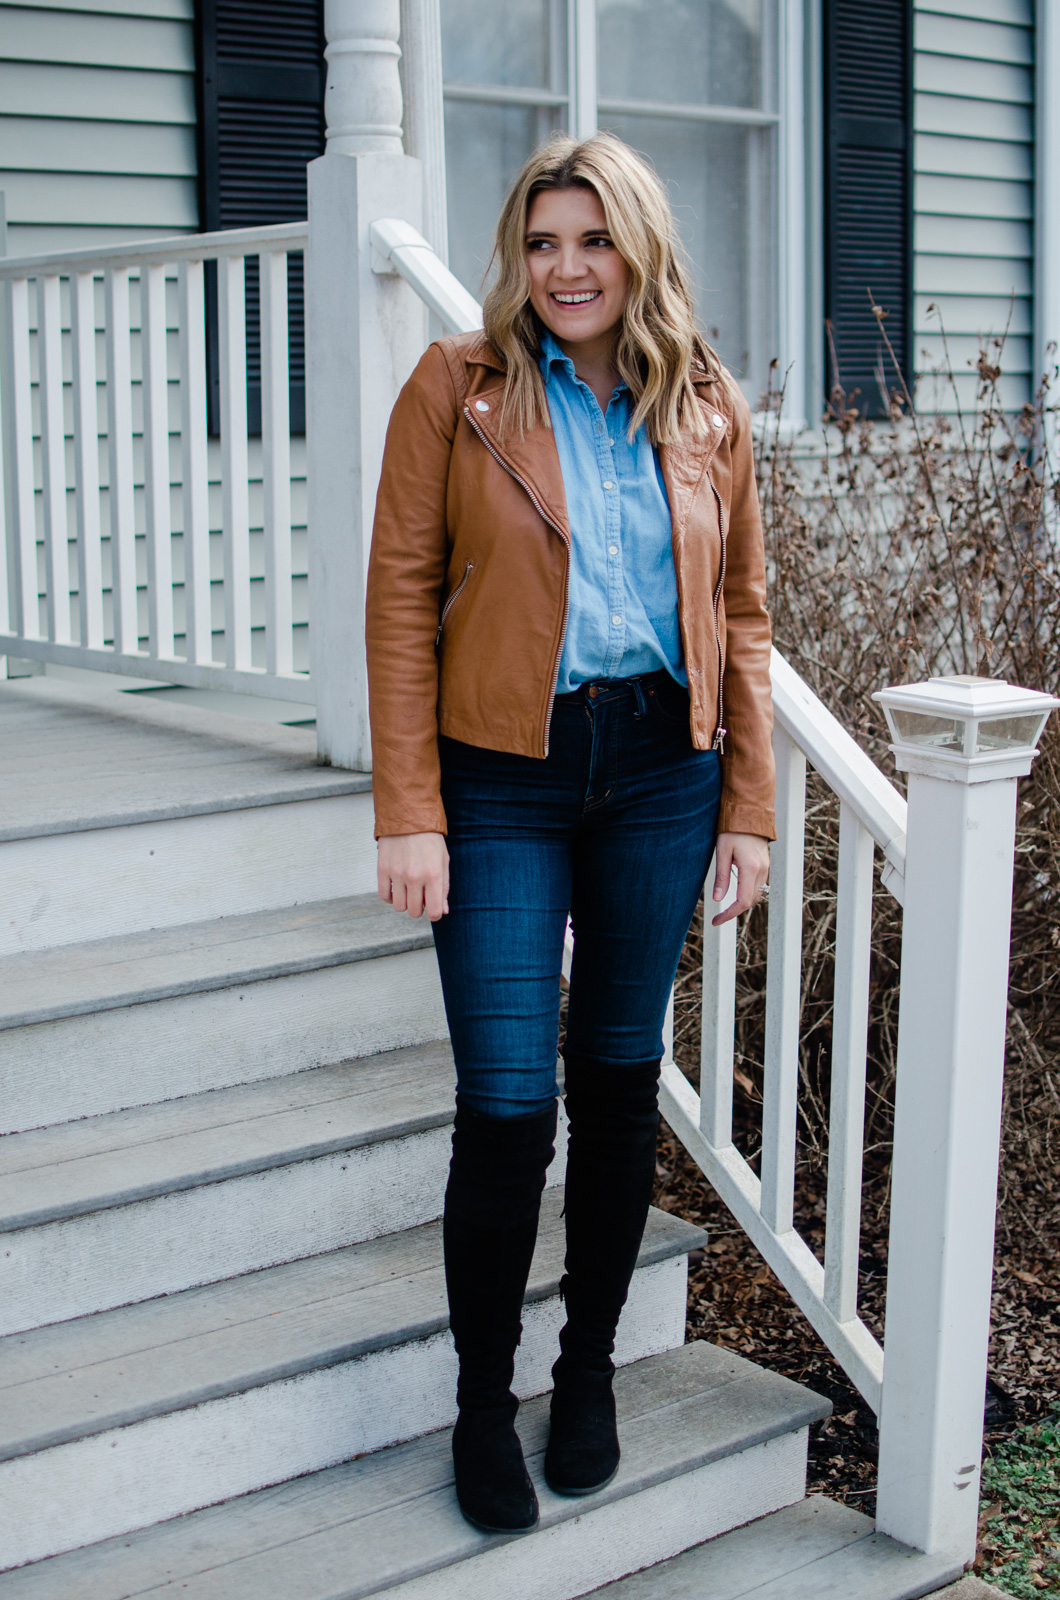 Richmond Virginia style blogger shares six over the knee boots outfits!